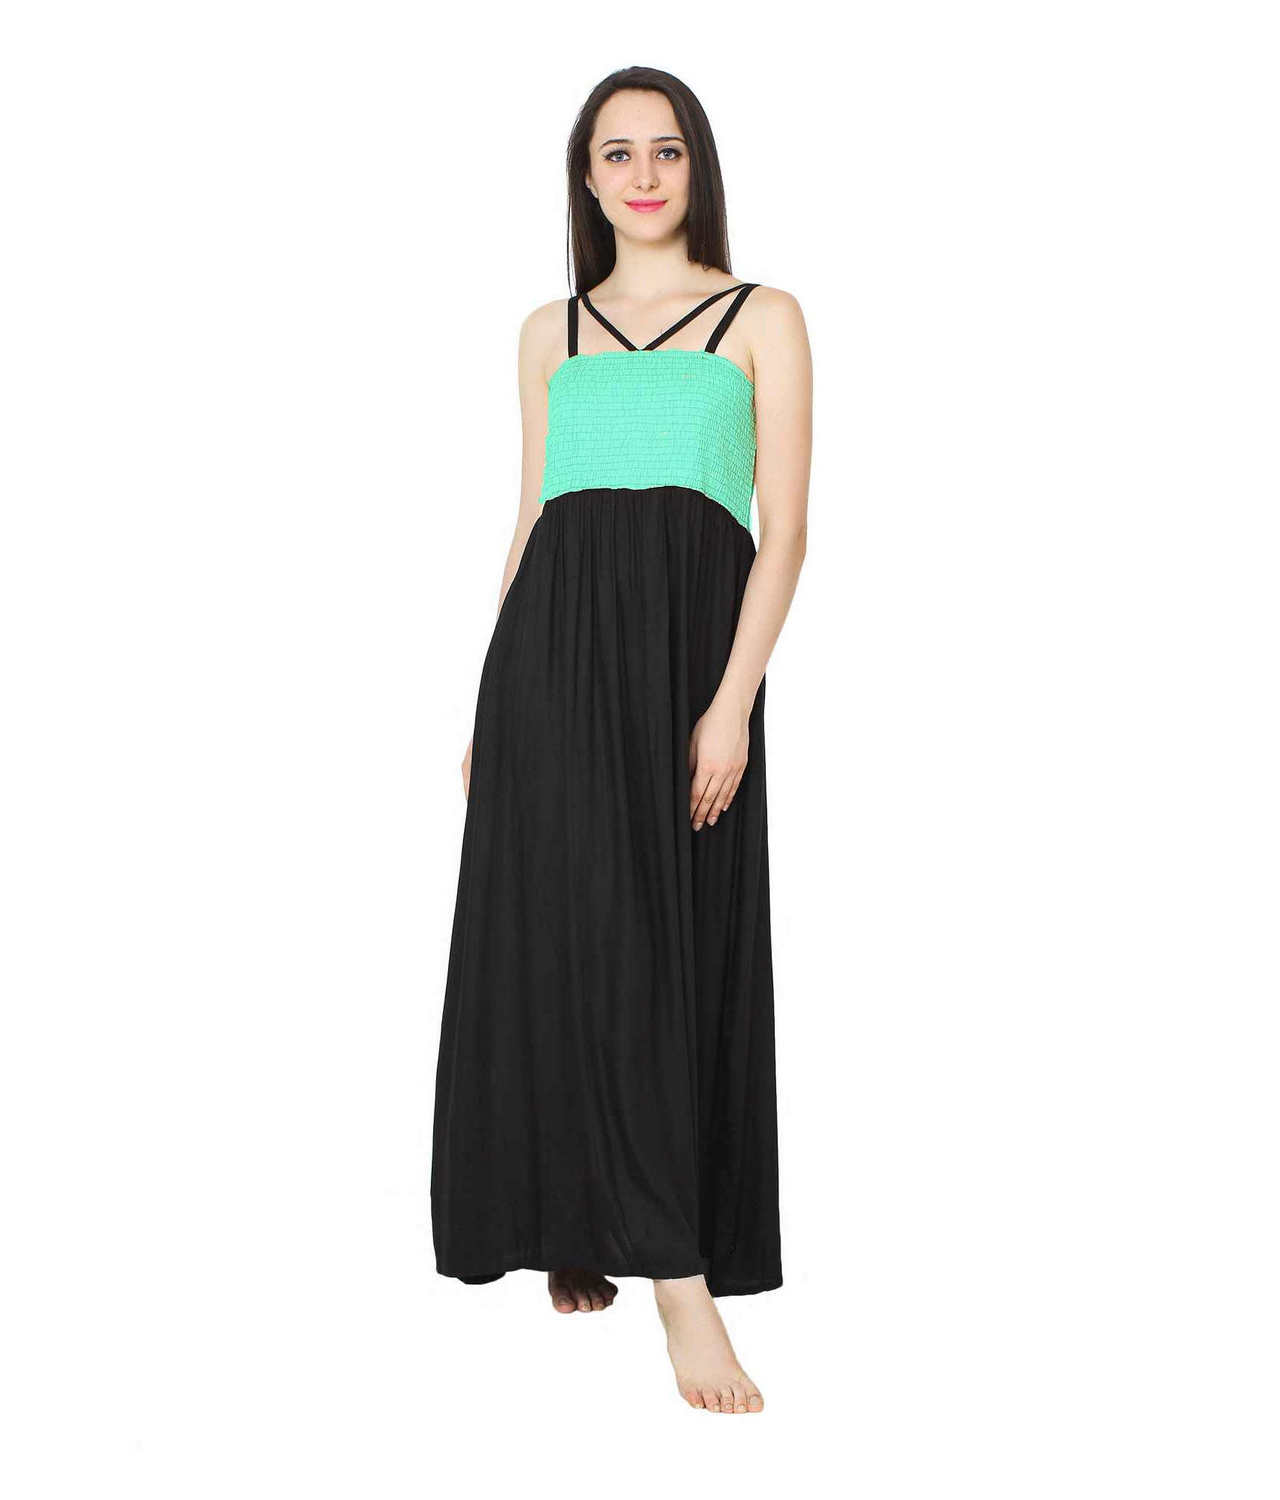 Embroidered Blouson Maxi Dress in Teal Green:Black